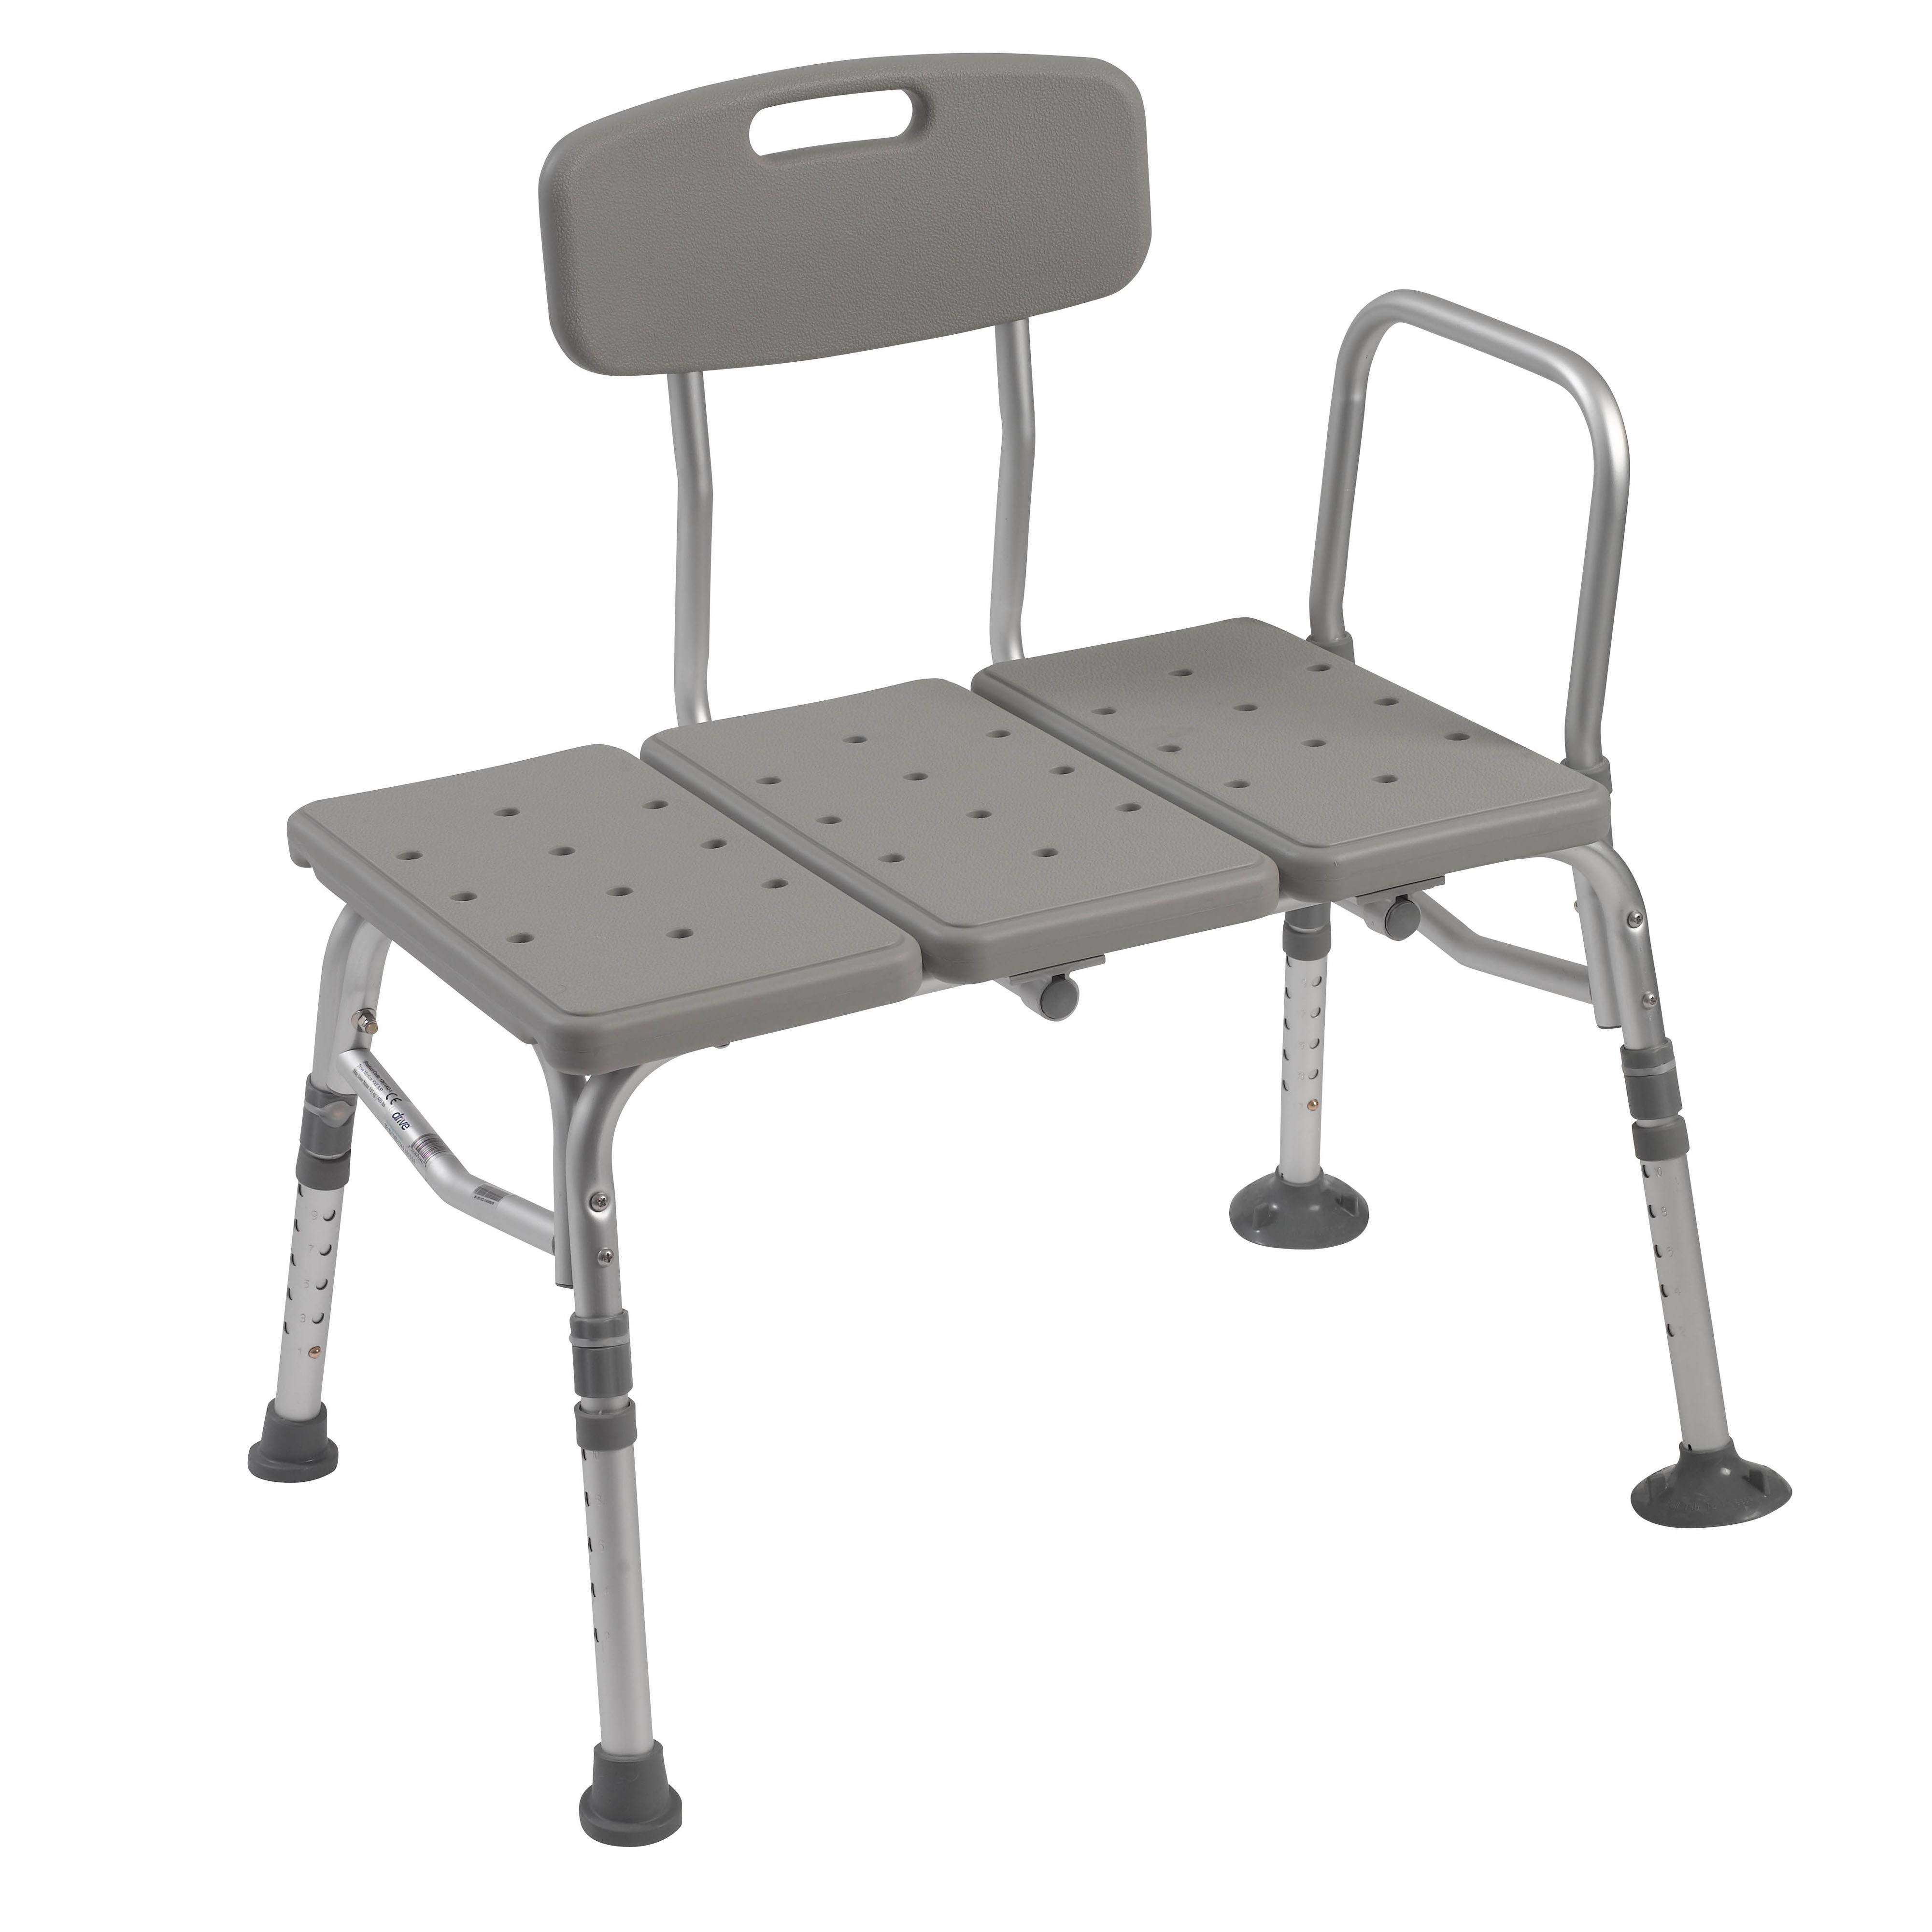 Drive Medical Plastic Tub Transfer Bench with Adjustable Backrest - Gray